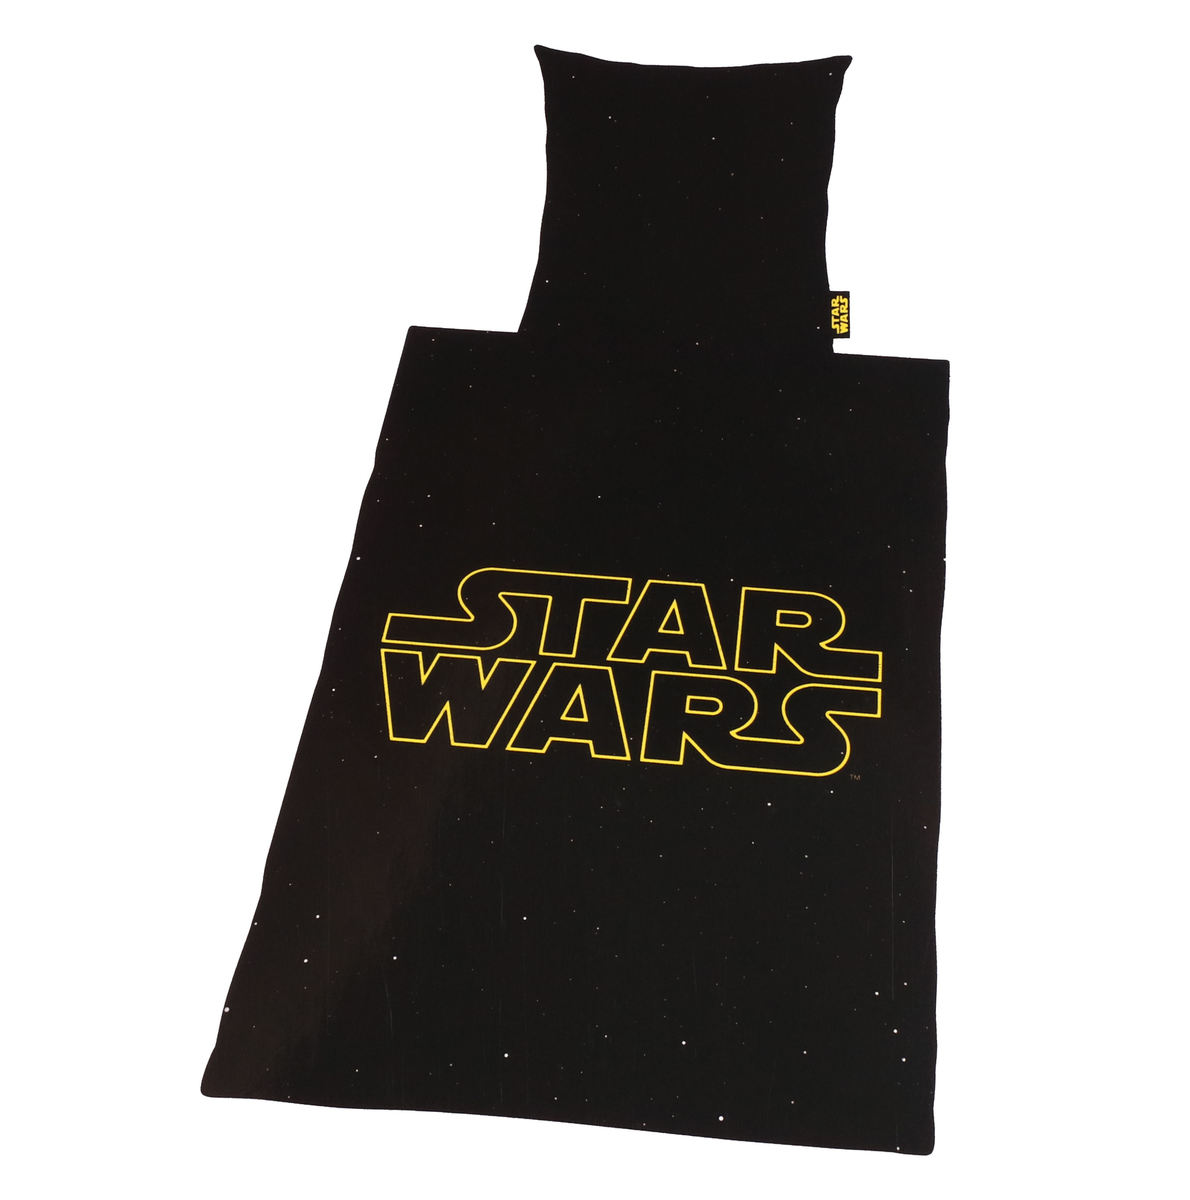 Bettwäsche Star Wars Herding 1 44762 73 077 Metalshop De